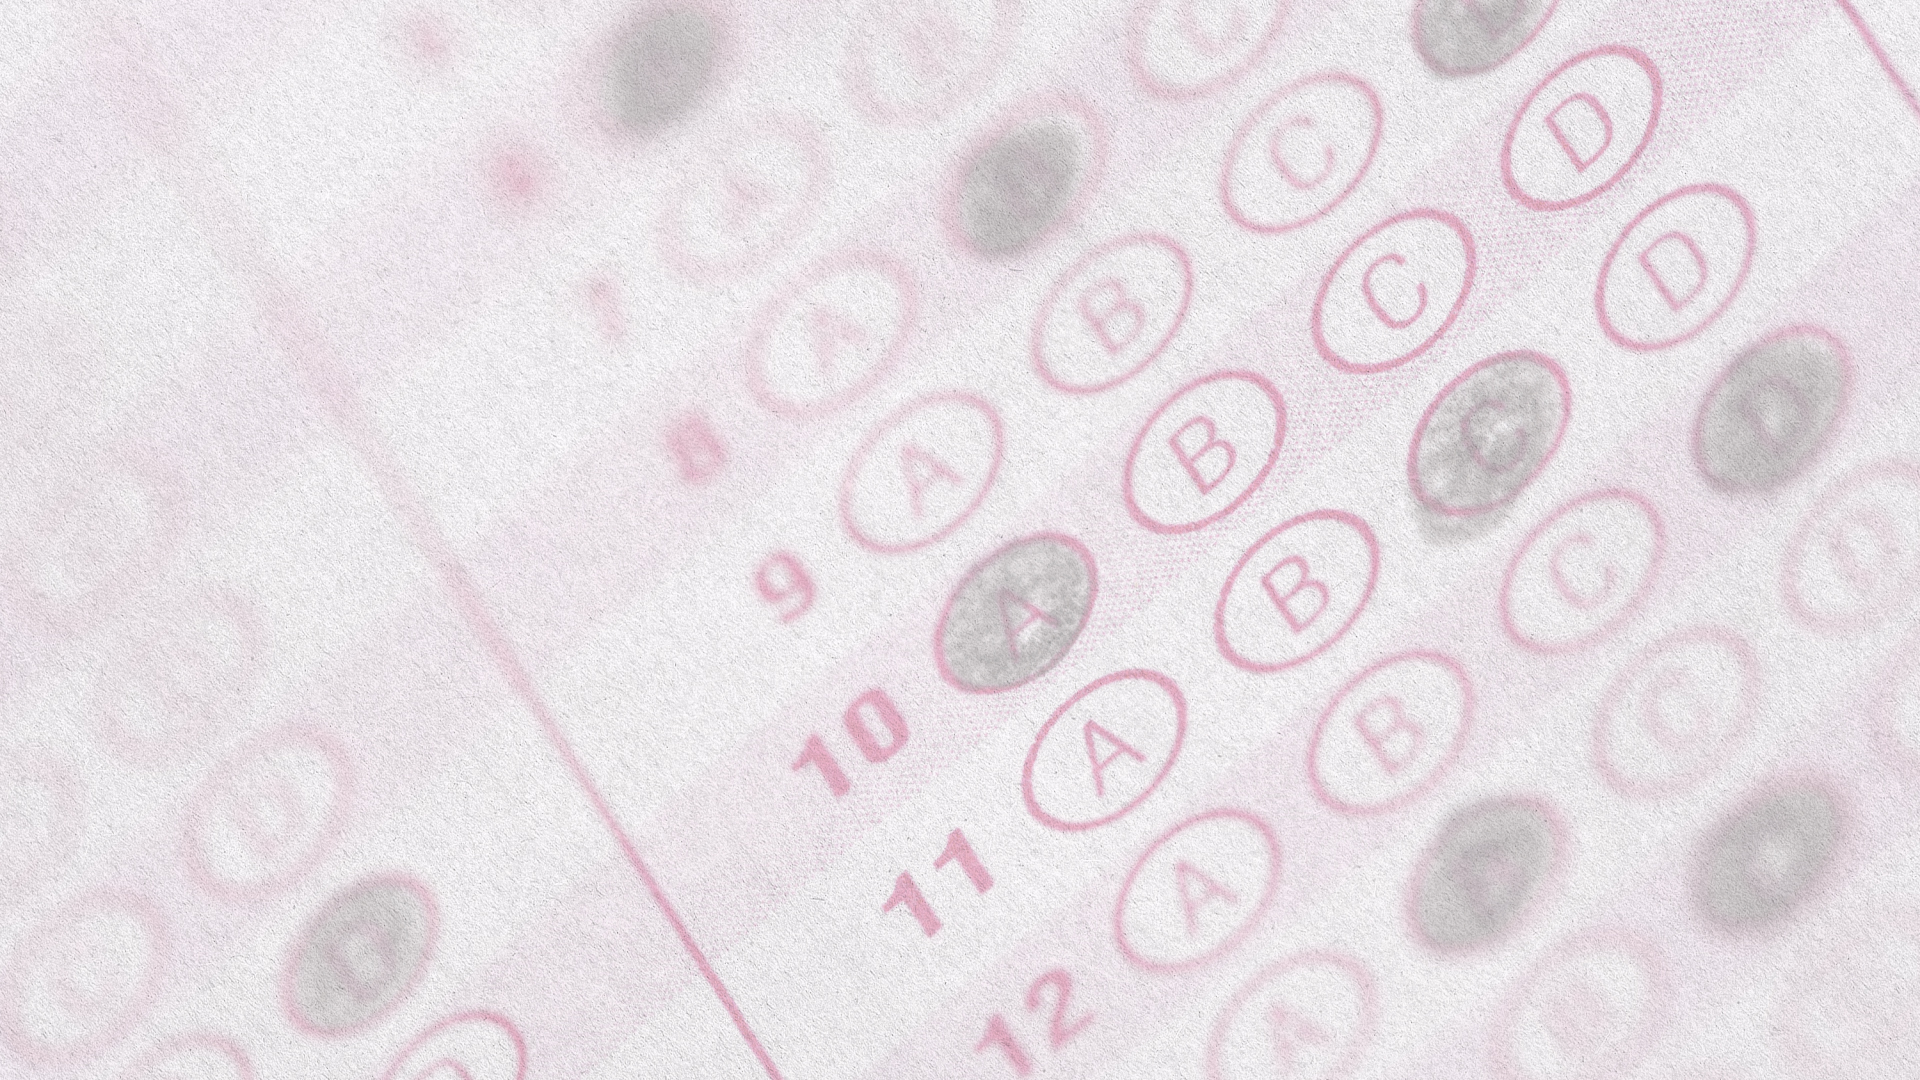 Should standardized tests be optional?